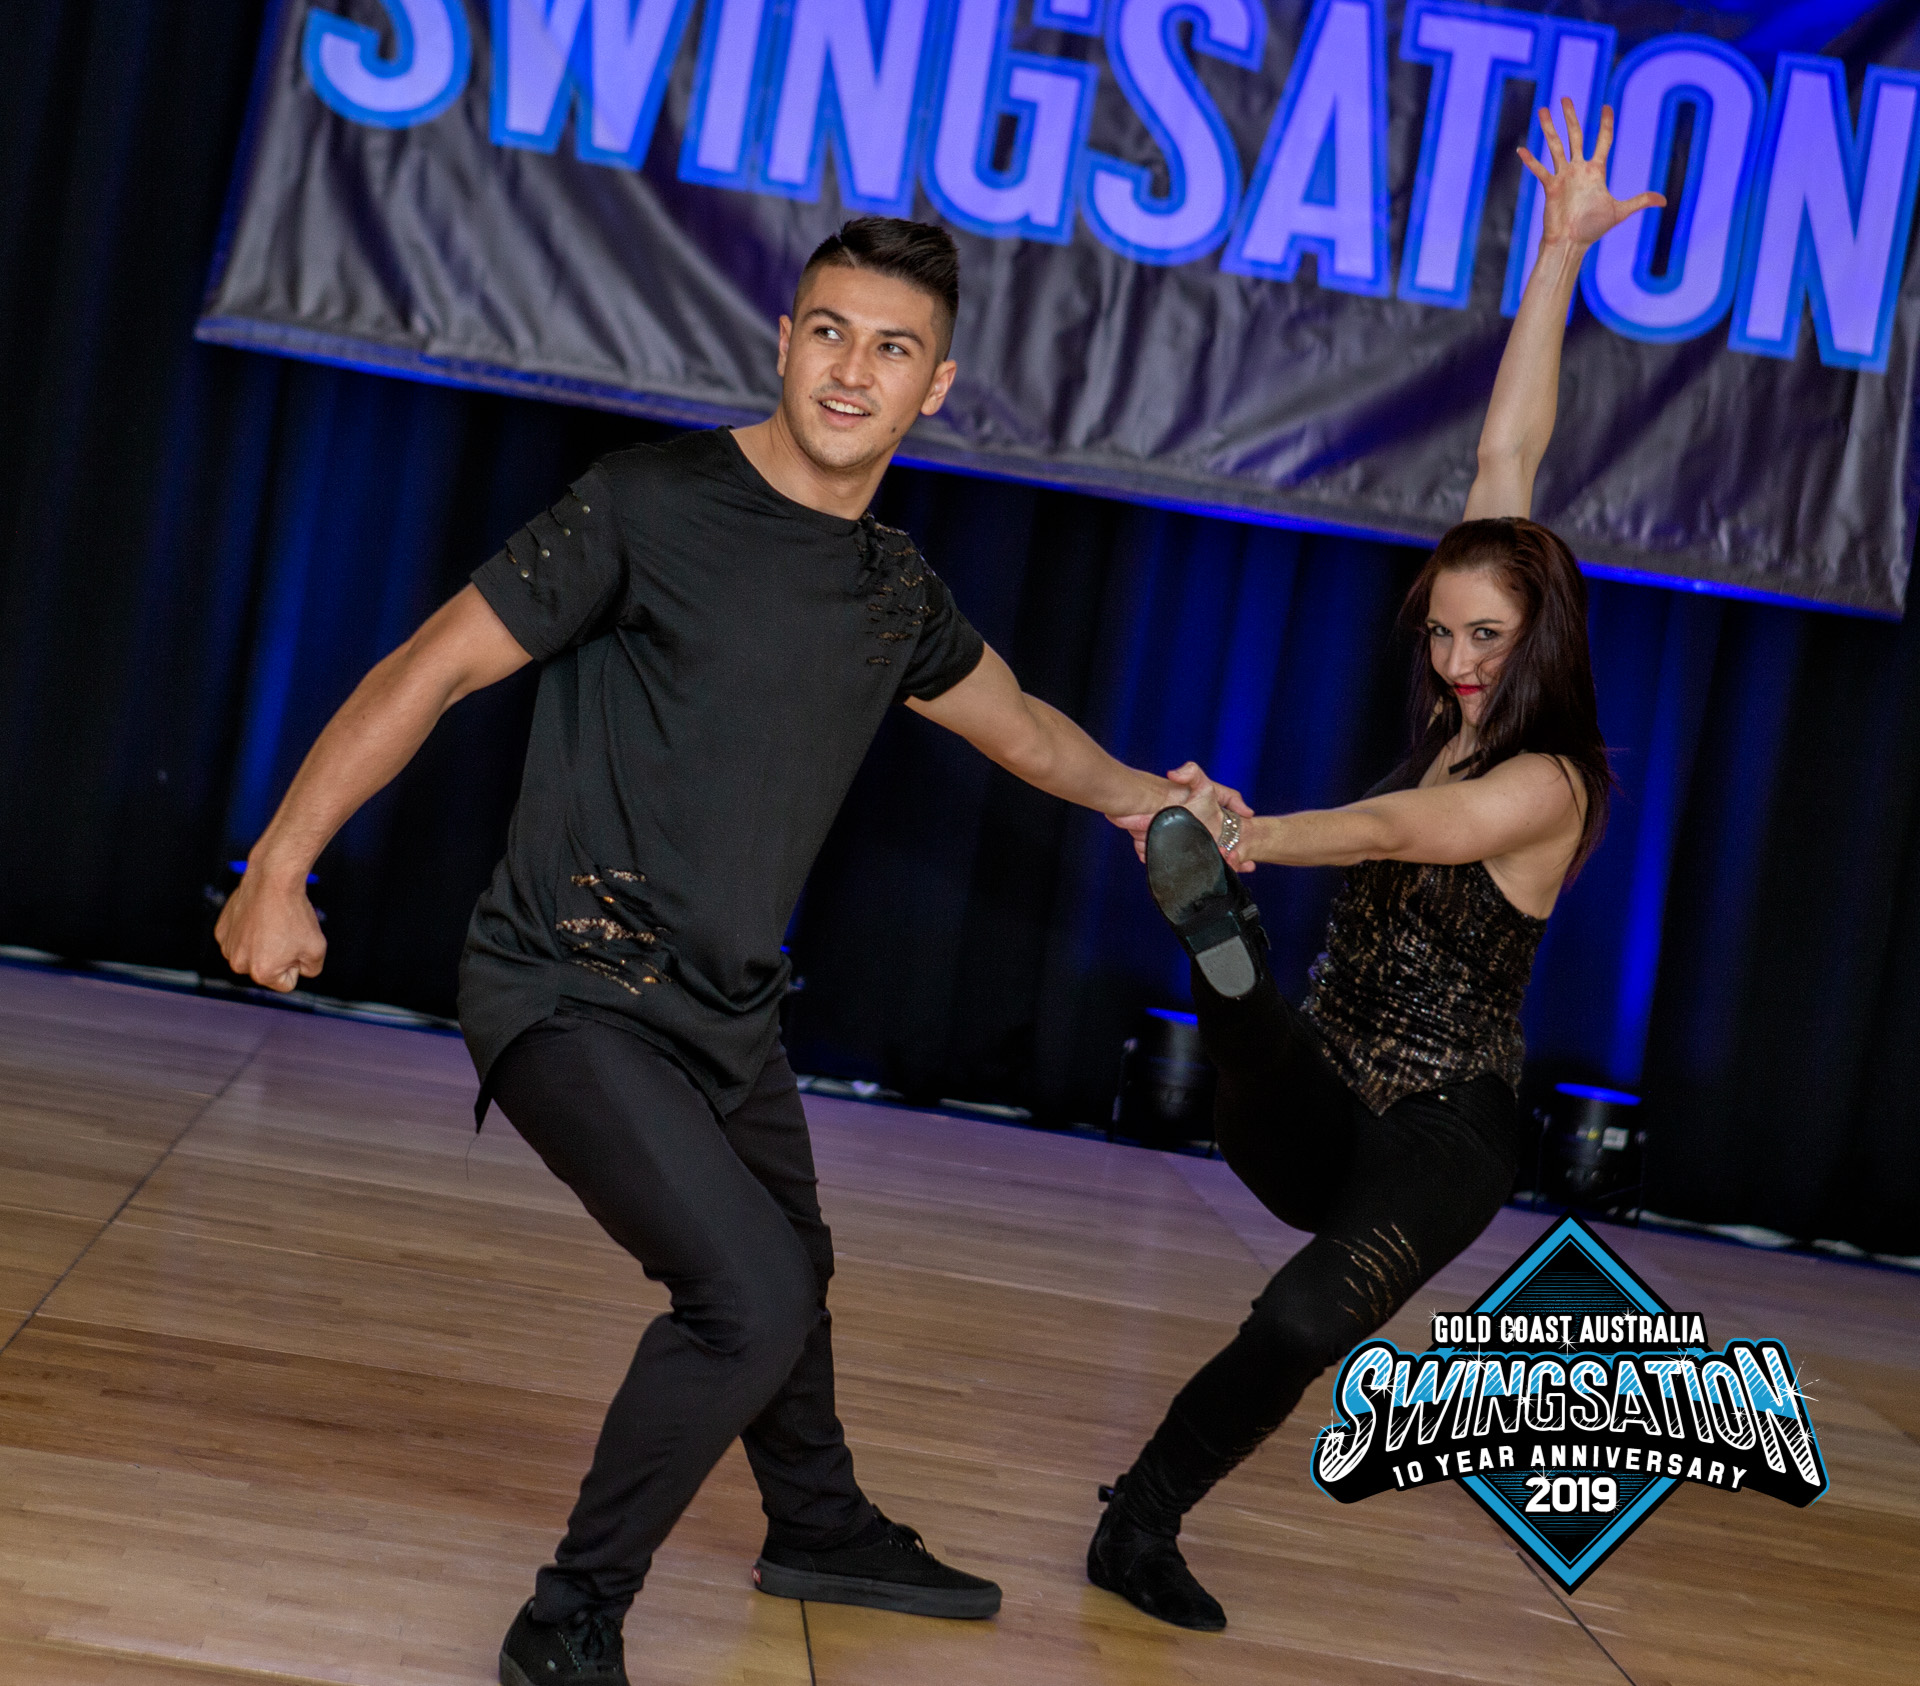 Swingsation-2019-1518